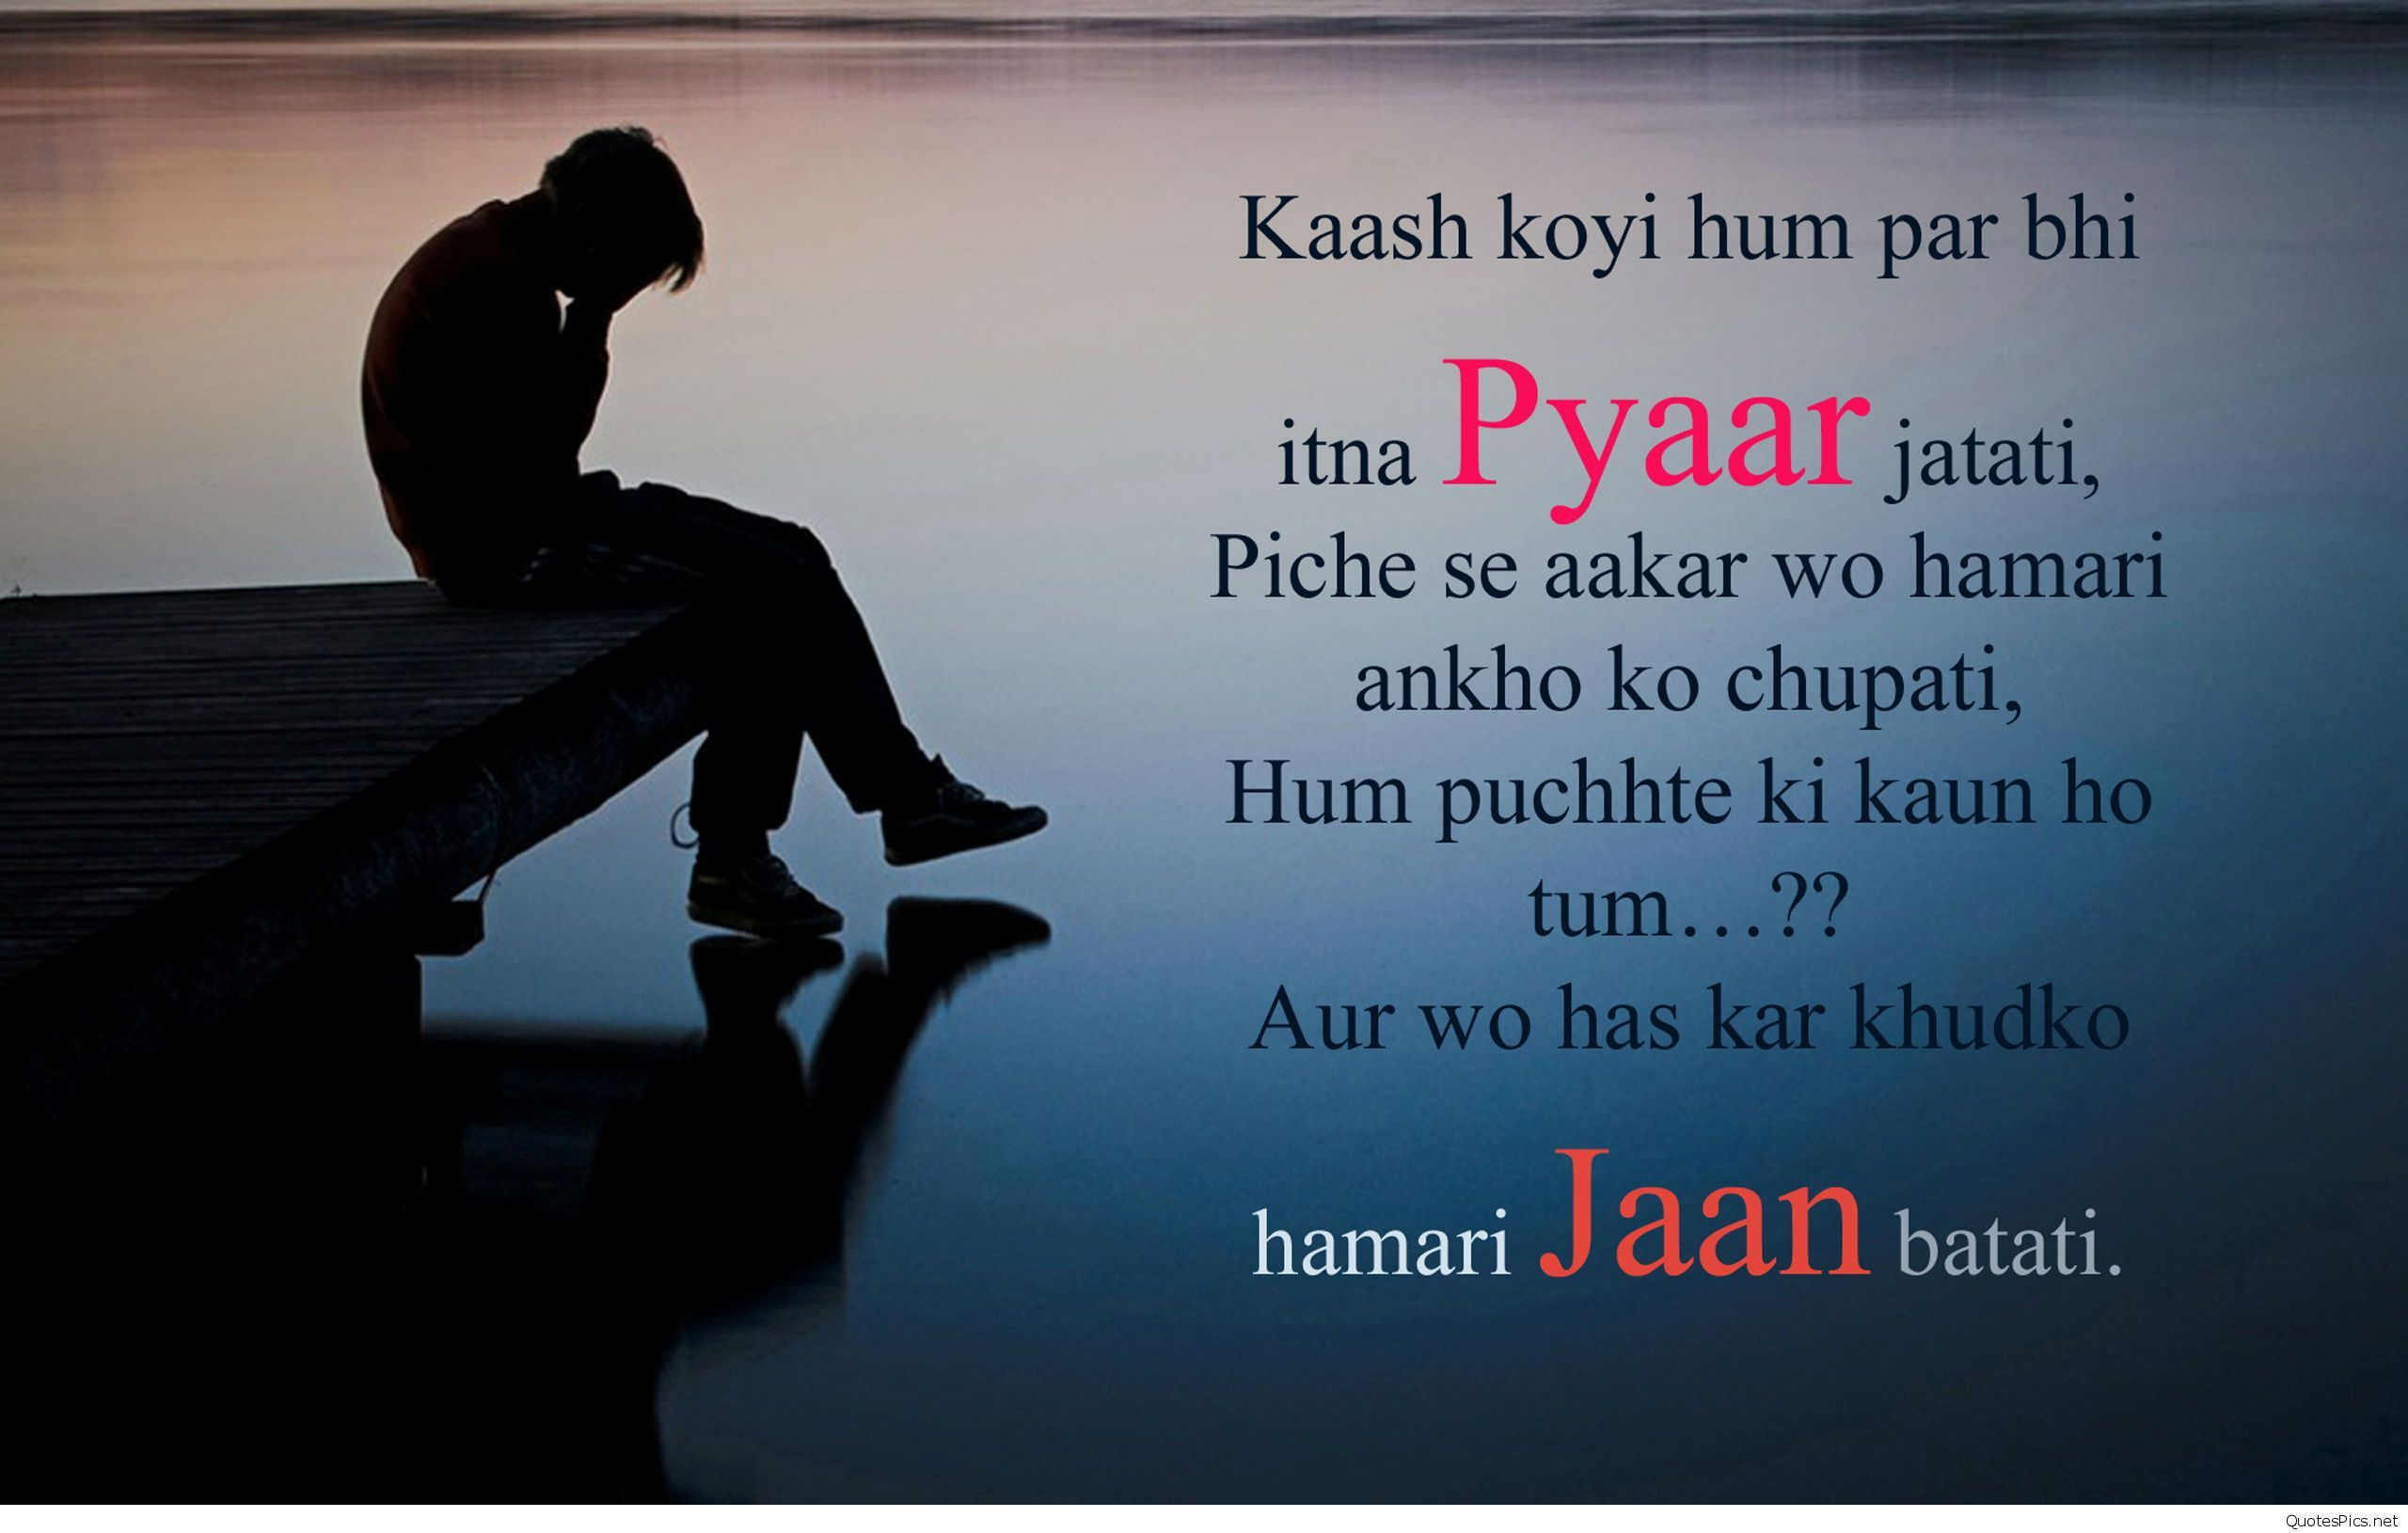 Here We Have Shared Awesome Bewfa Sad Shayari In Hindi For